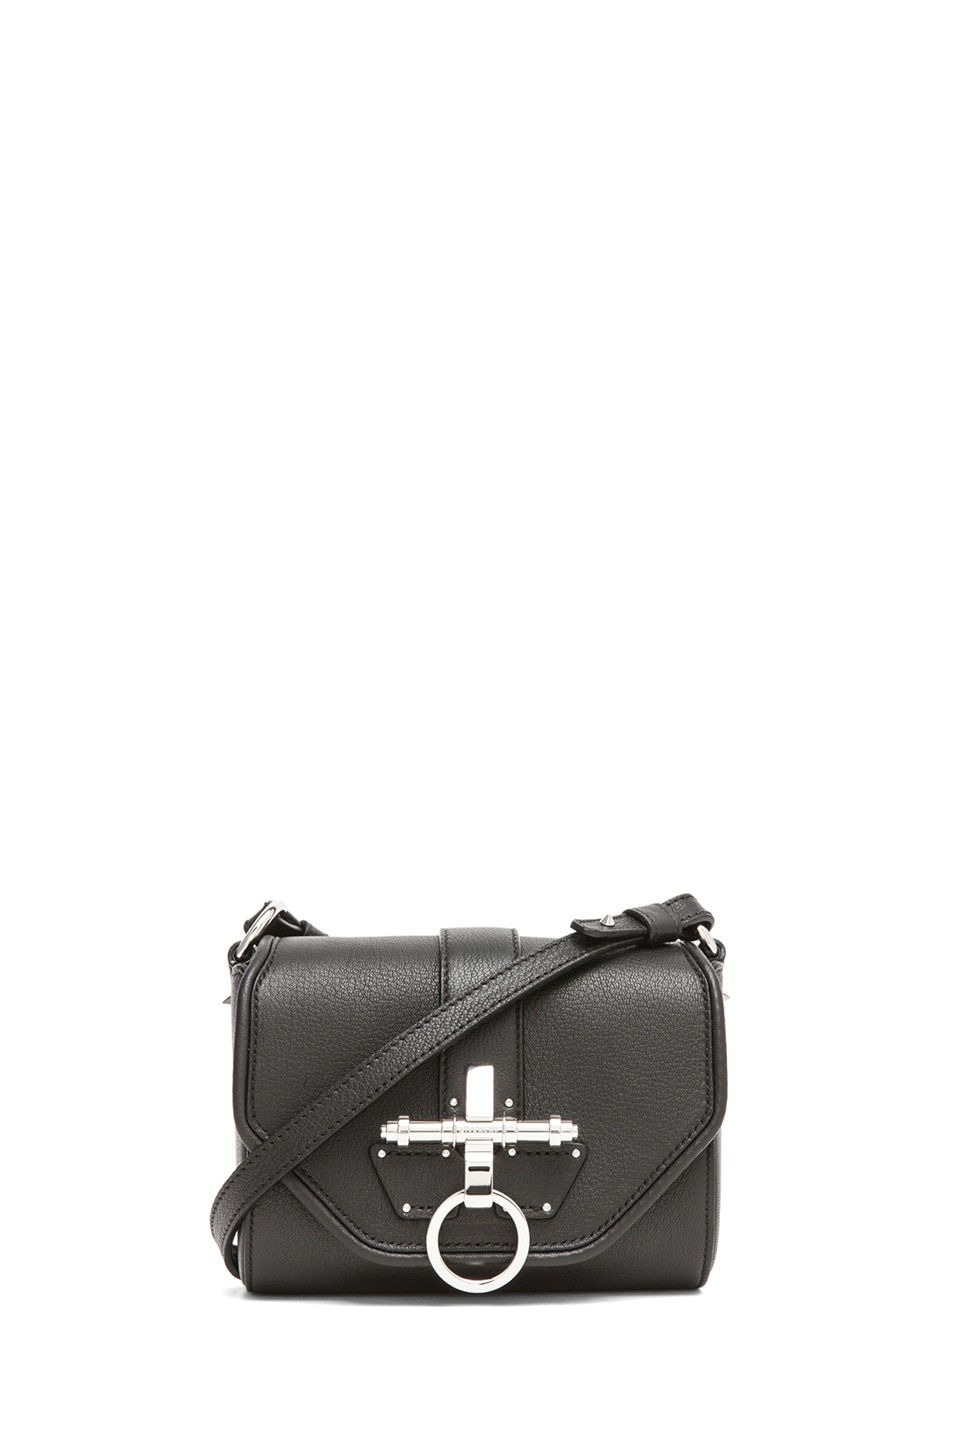 Image 1 of GIVENCHY Obsedia in Black